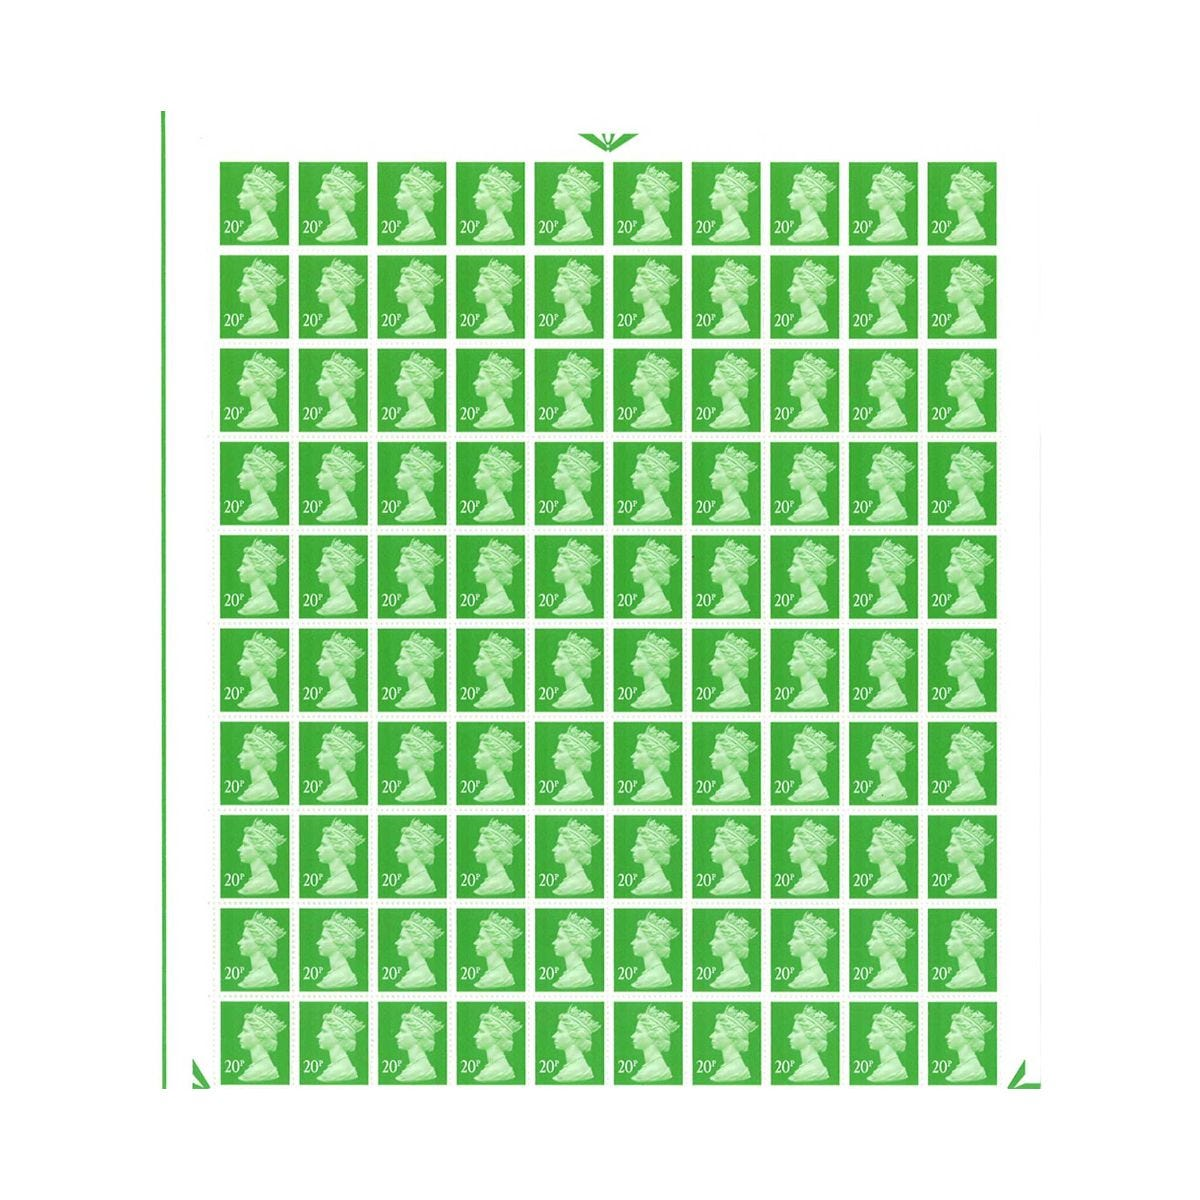 Image of 20p Postage Stamps Sheet of 100 *